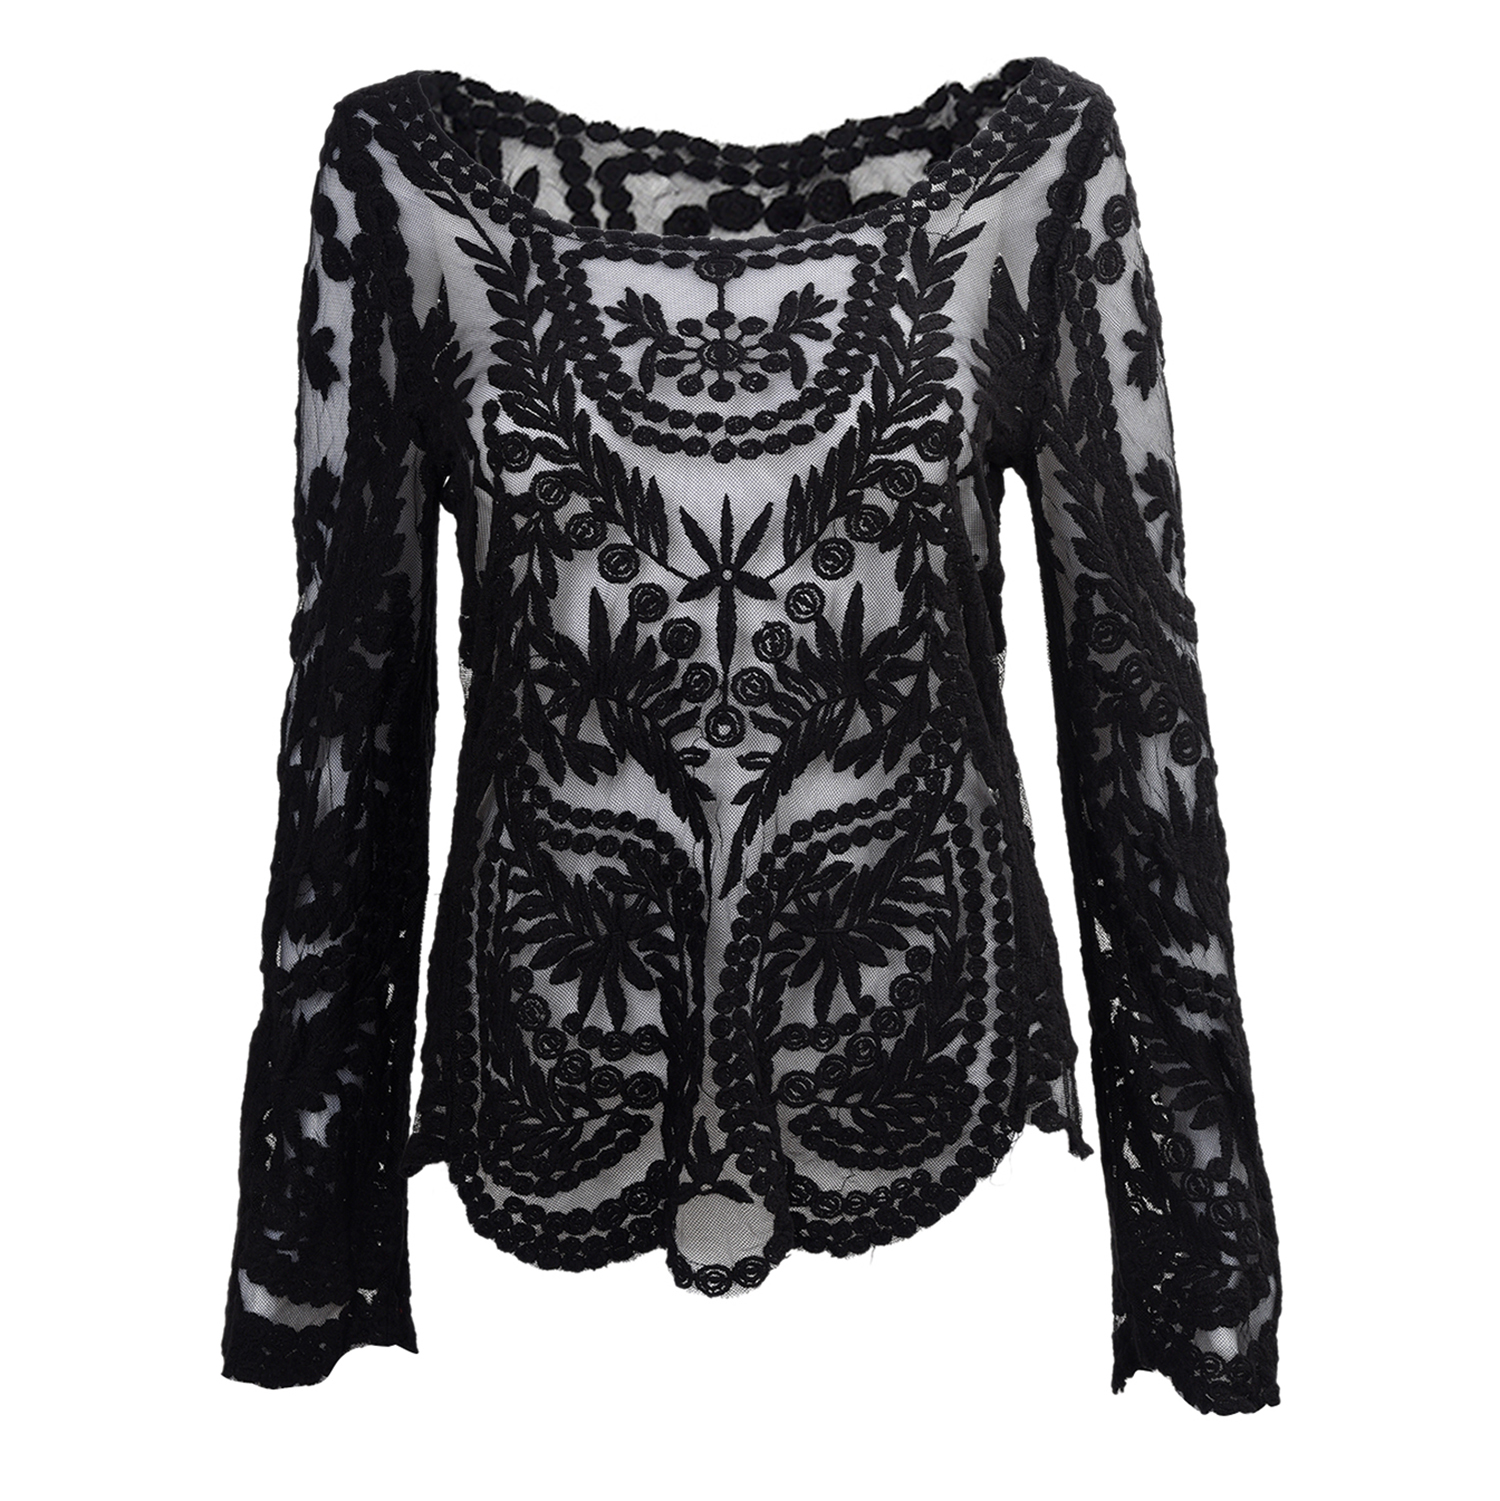 0dbc8b27e18 Hot Sexy Lingerie Semi Plus Size Satin Lace Black Sheer Sleeve Embroidery Floral  Lace Crochet T shirt Vintage (Black)-in T-Shirts from Women s Clothing on  ...